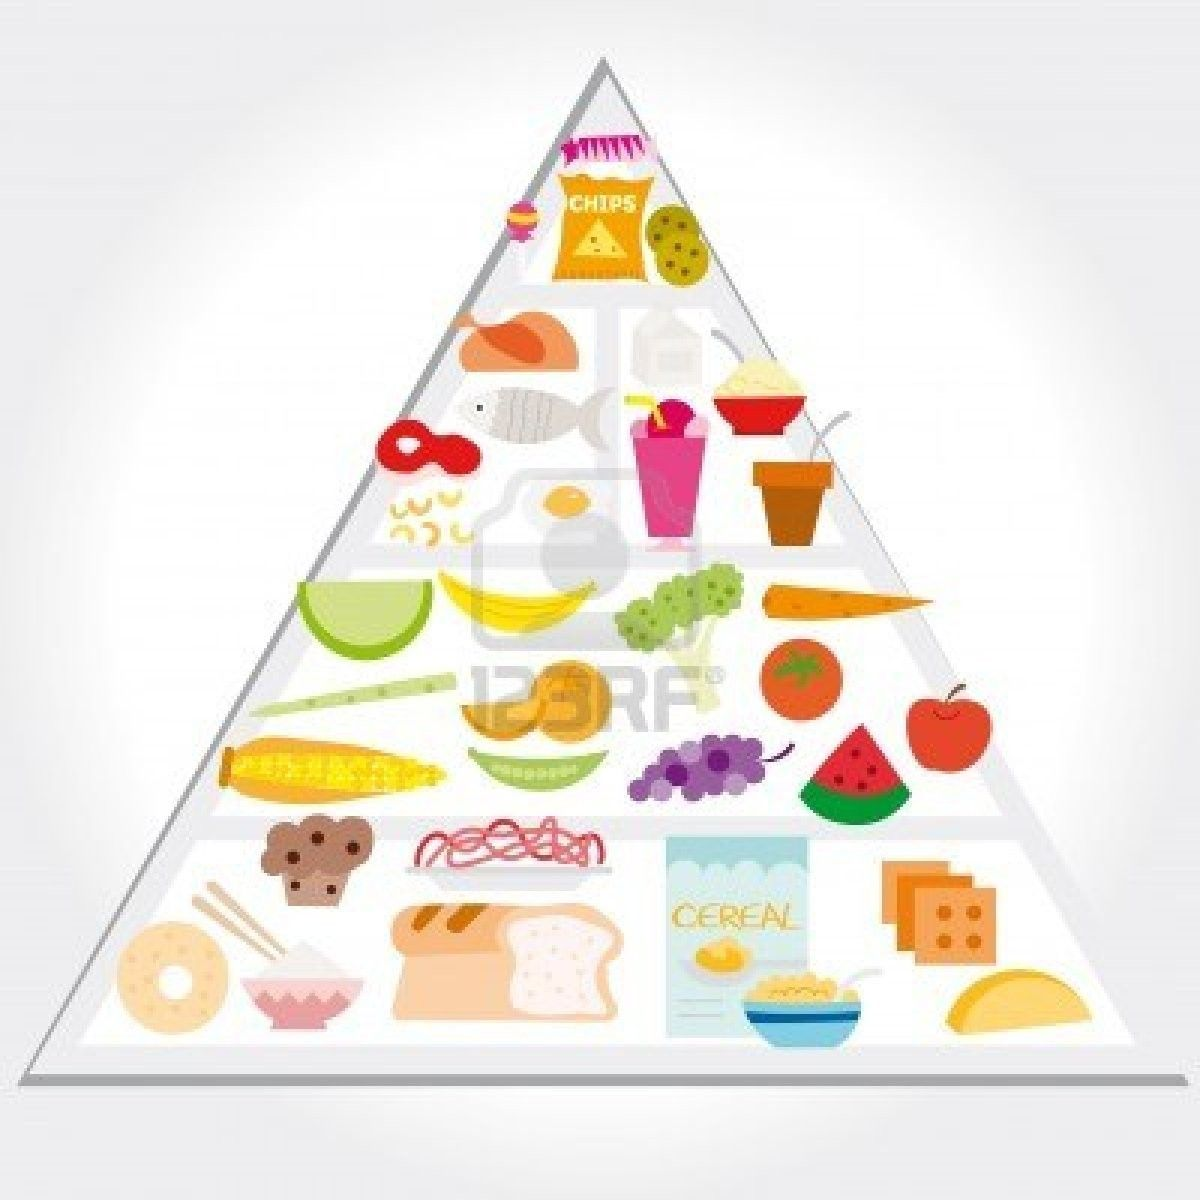 Caribbean Food Guide Pyramid